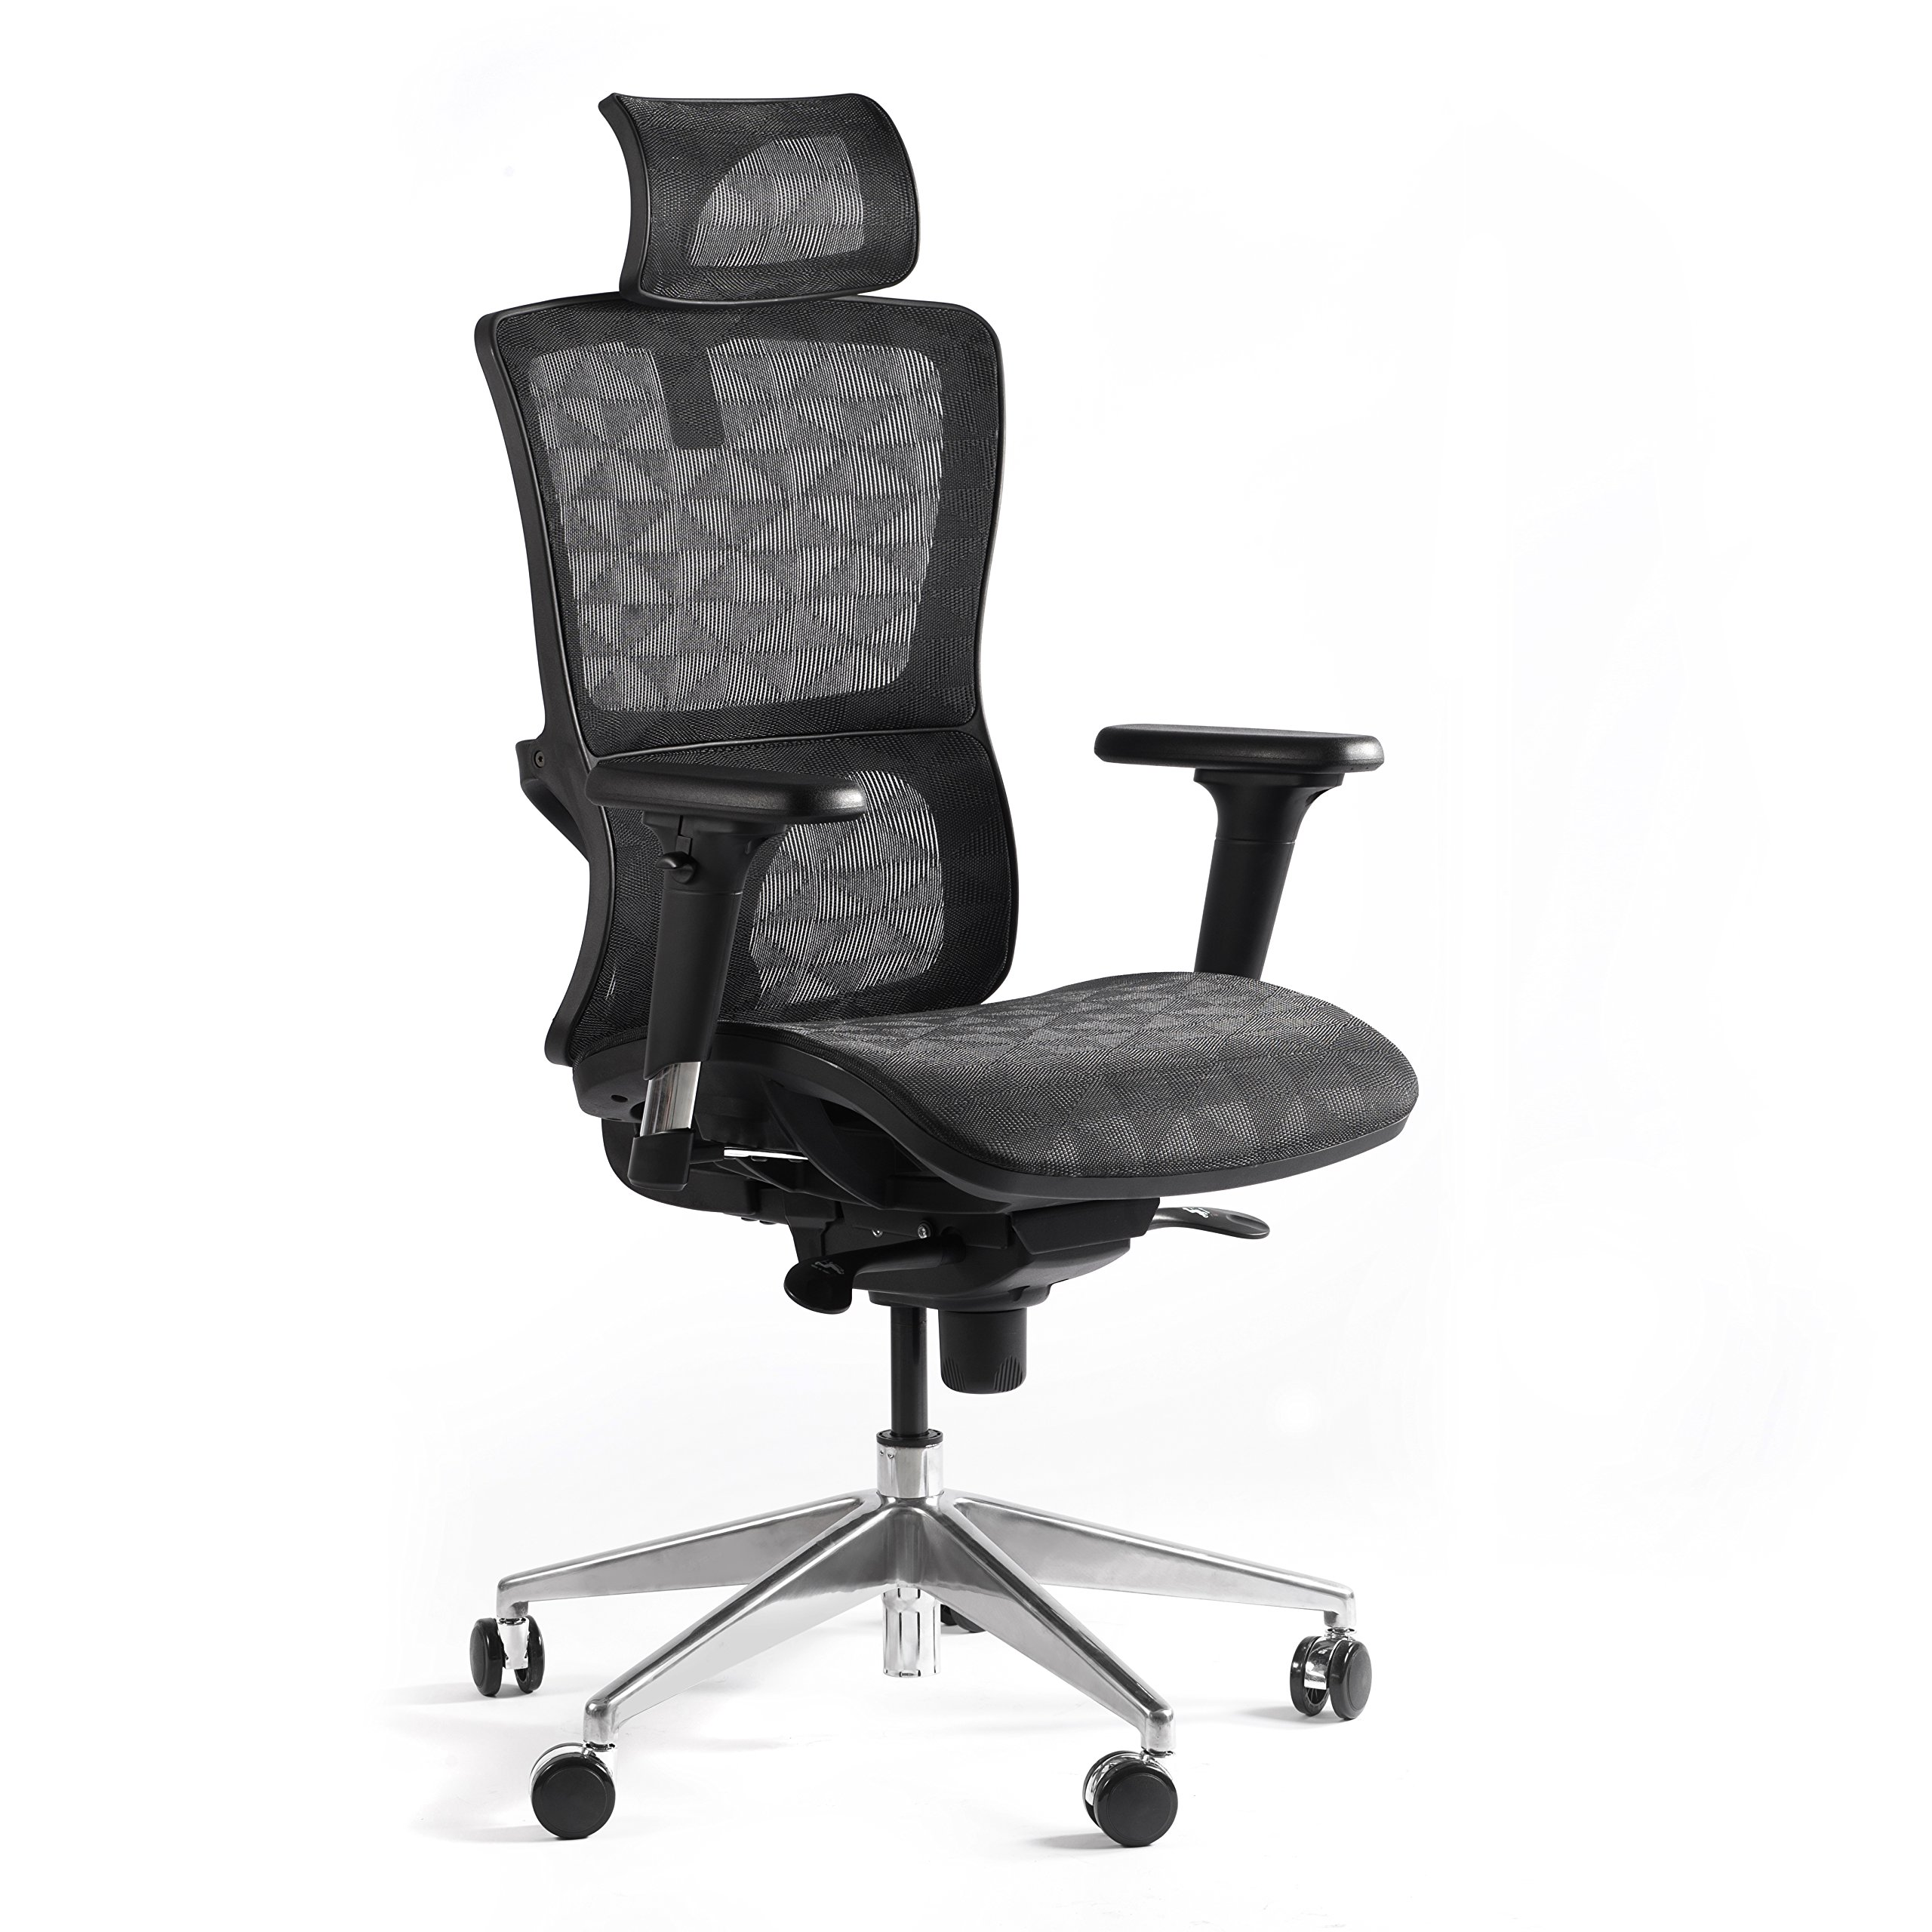 CCTRO High Back Mesh Ergonomic Office Chair Executive Computer Task Chair with Adjustable Headrest Armrest for Home Office Conference Room